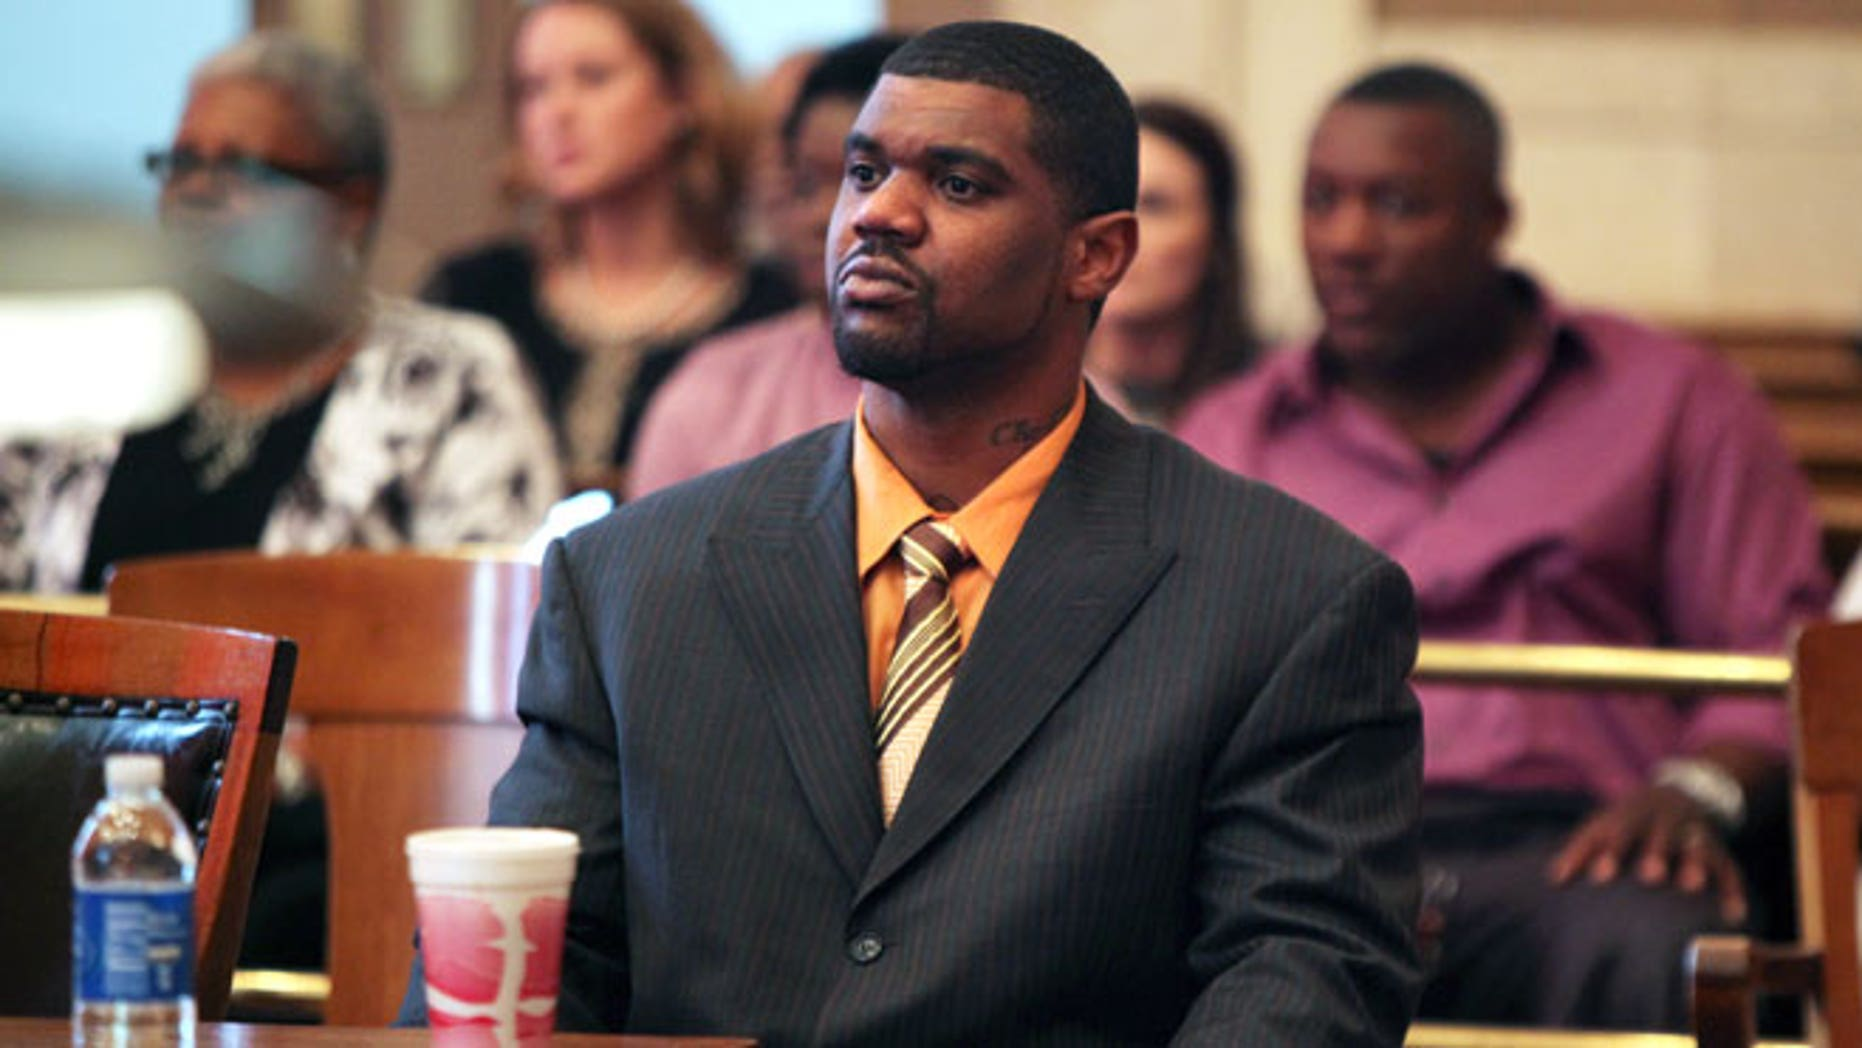 April 24, 2012: Former Cincinnati Bengals NFL football linebacker Nate Webster, appears in court for closing arguments in his trial in Cincinnati.